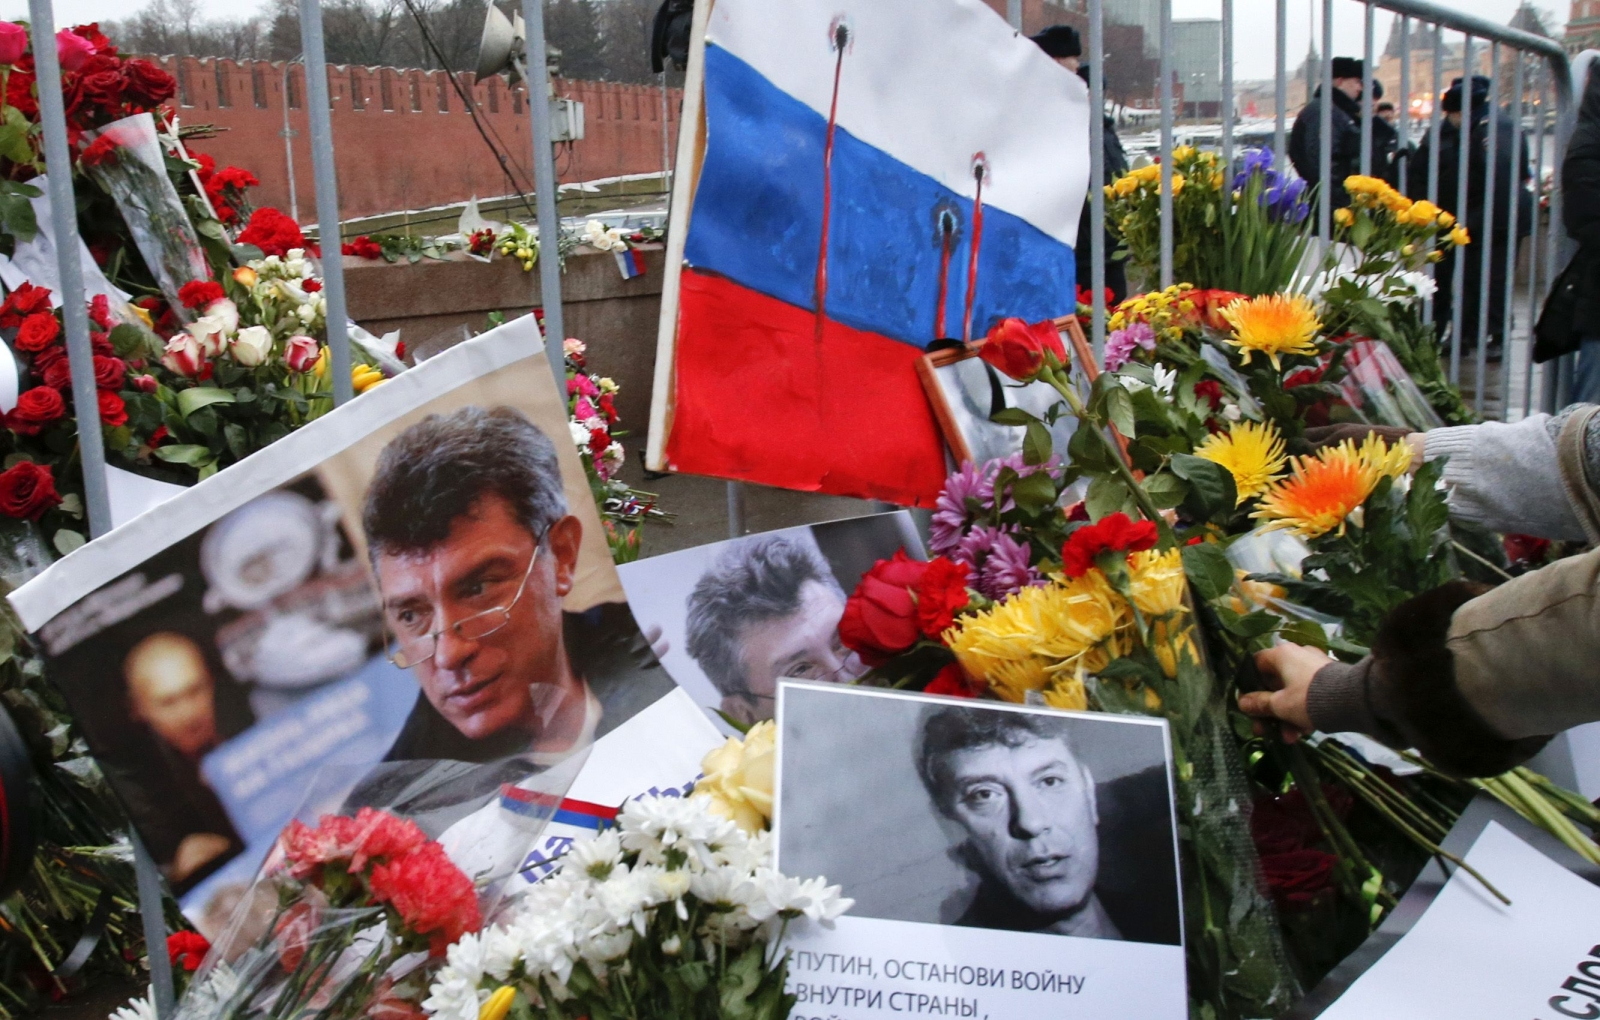 United Kingdom urges Russian Federation to continue investigation into Nemtsov murder